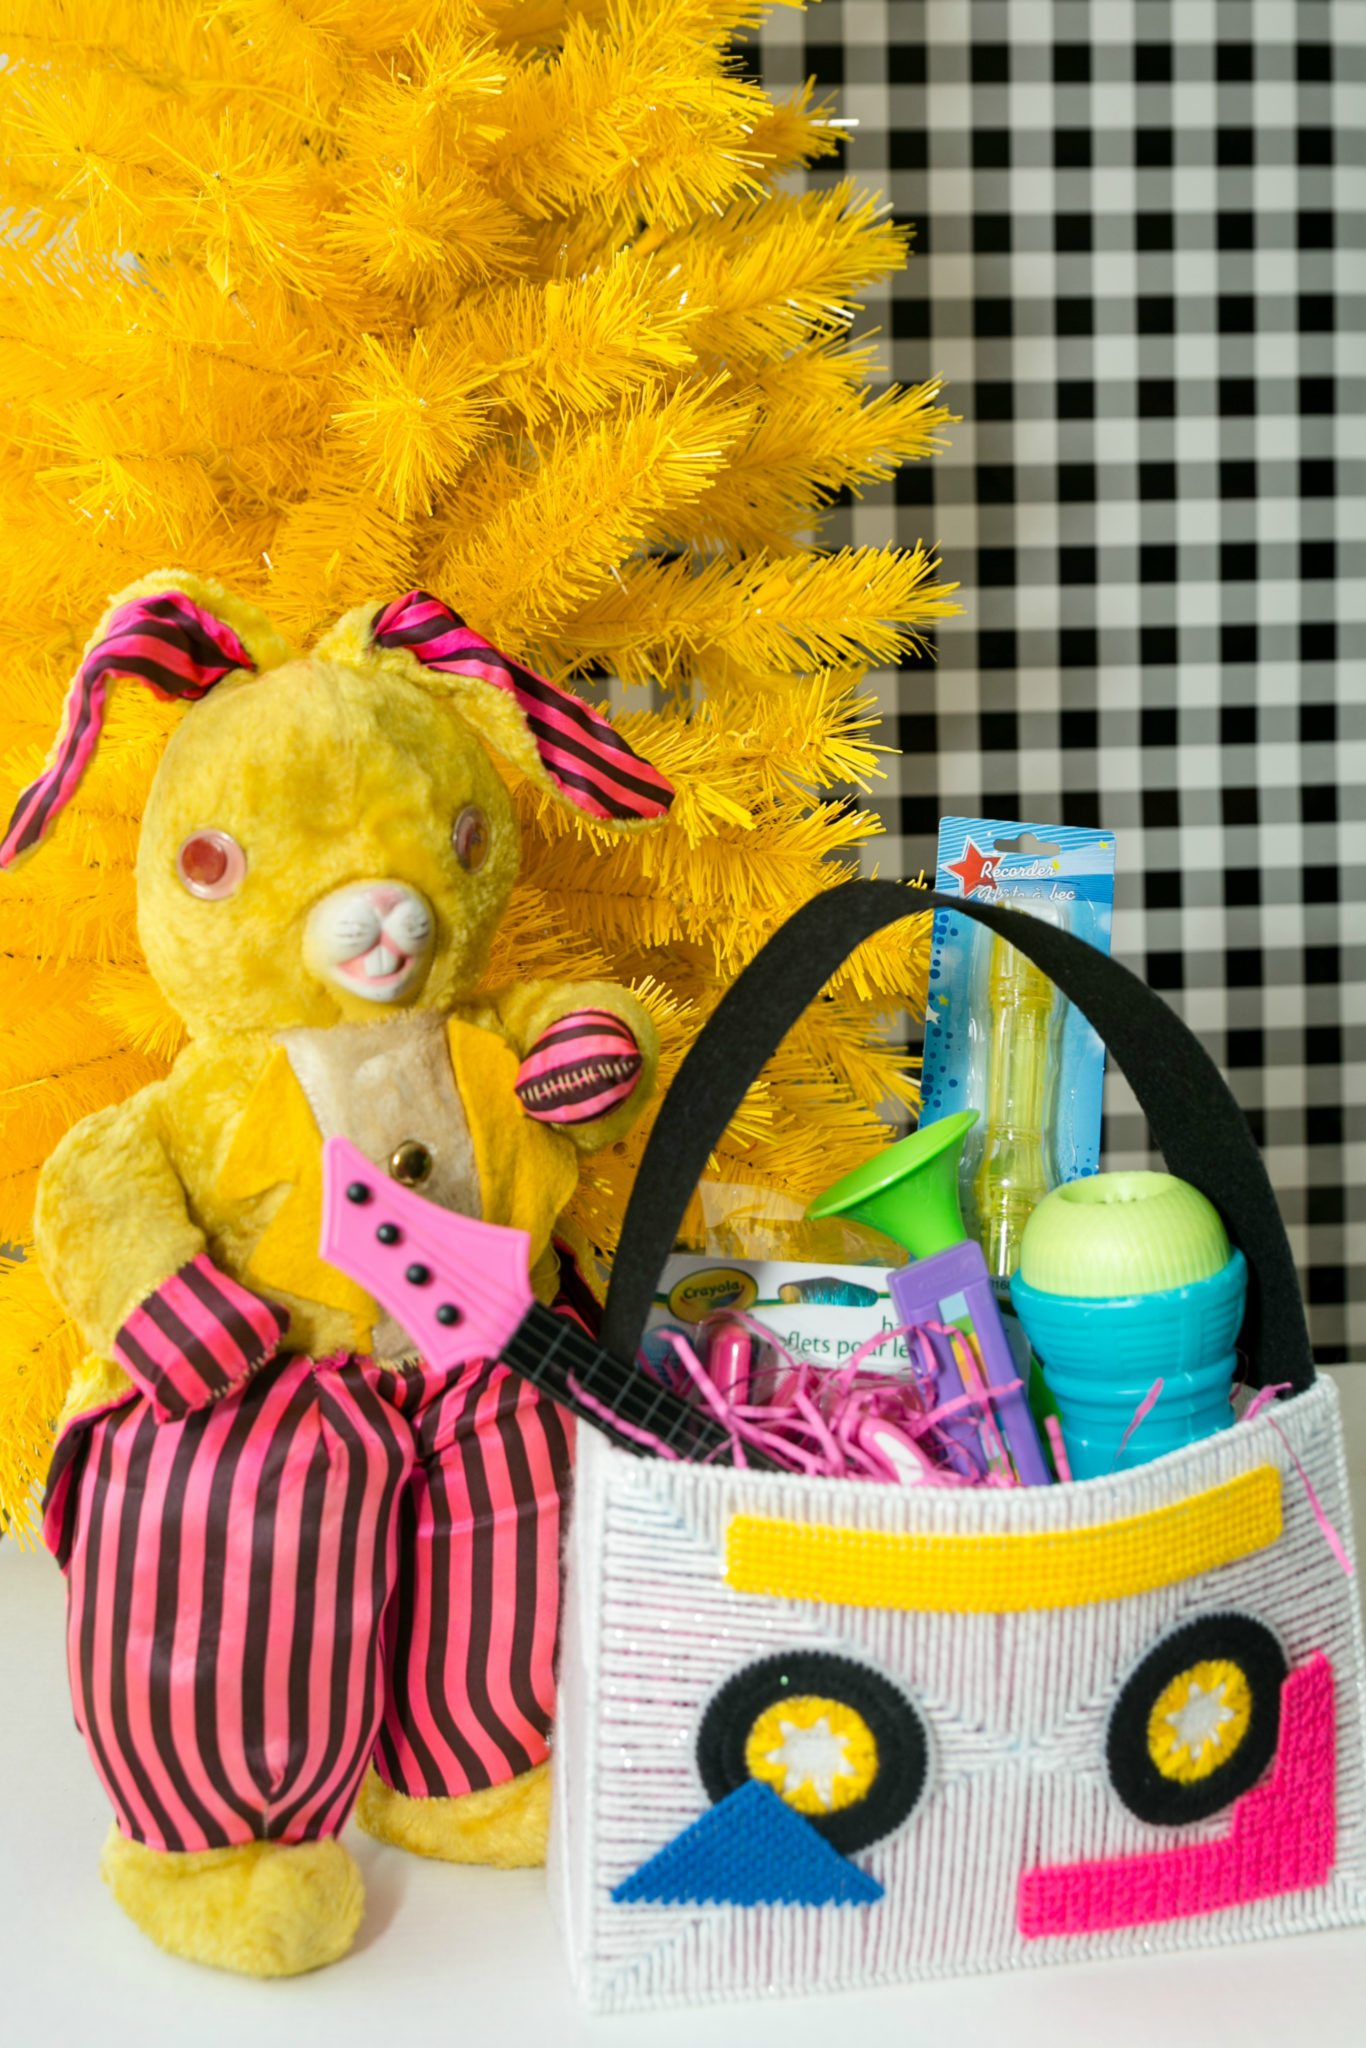 Easter baskets with a musical theme.